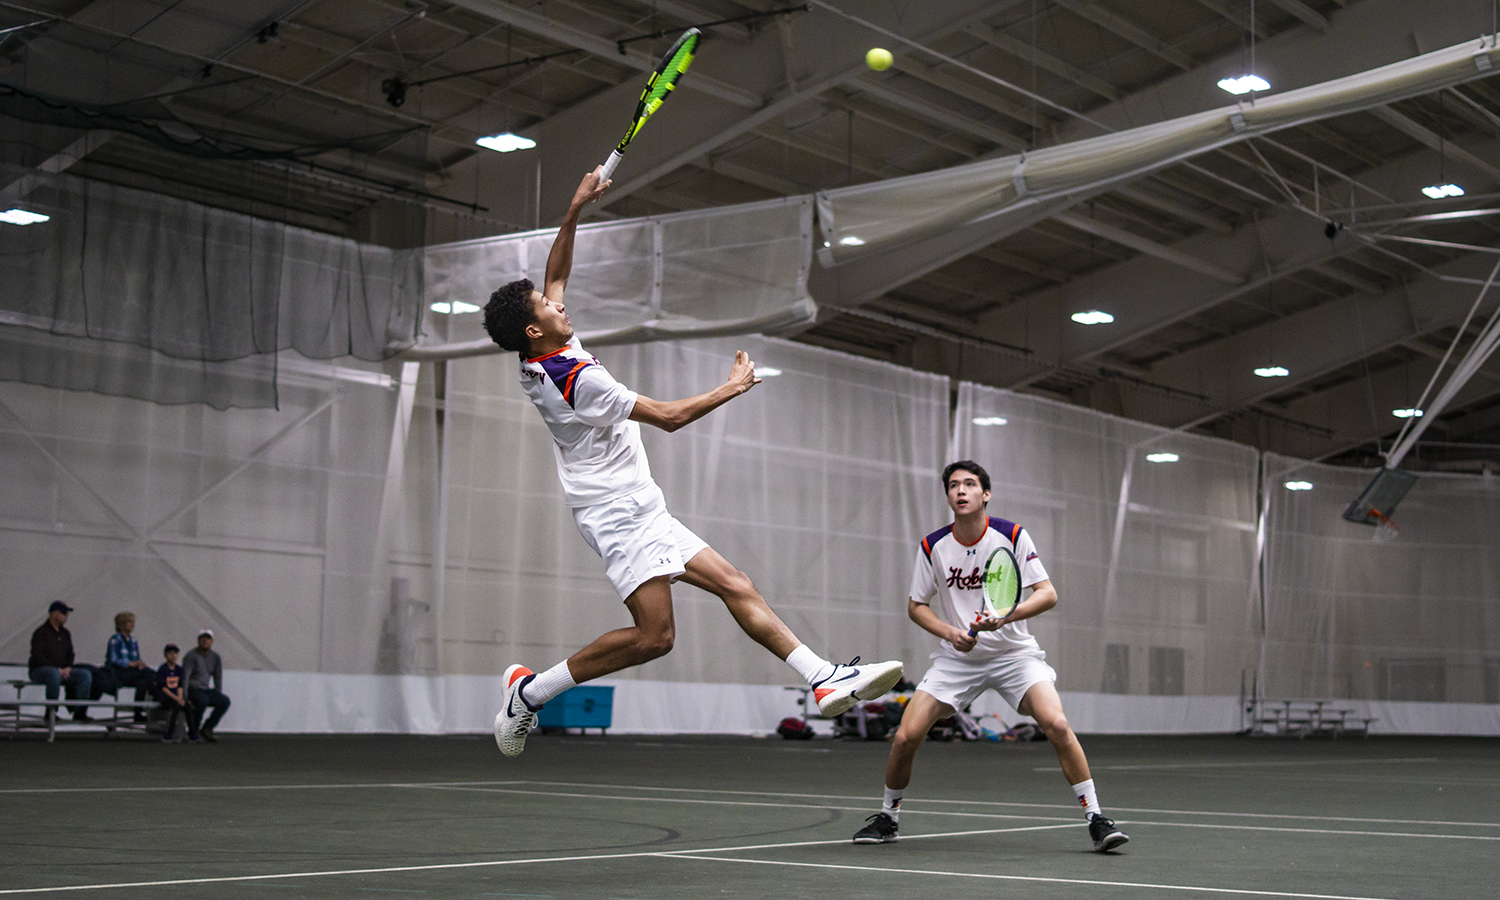 Jon Atwater '19 leaps for a volley during his doubles match with Thomas Shung '22 as Hobart defeats Oberlin College.